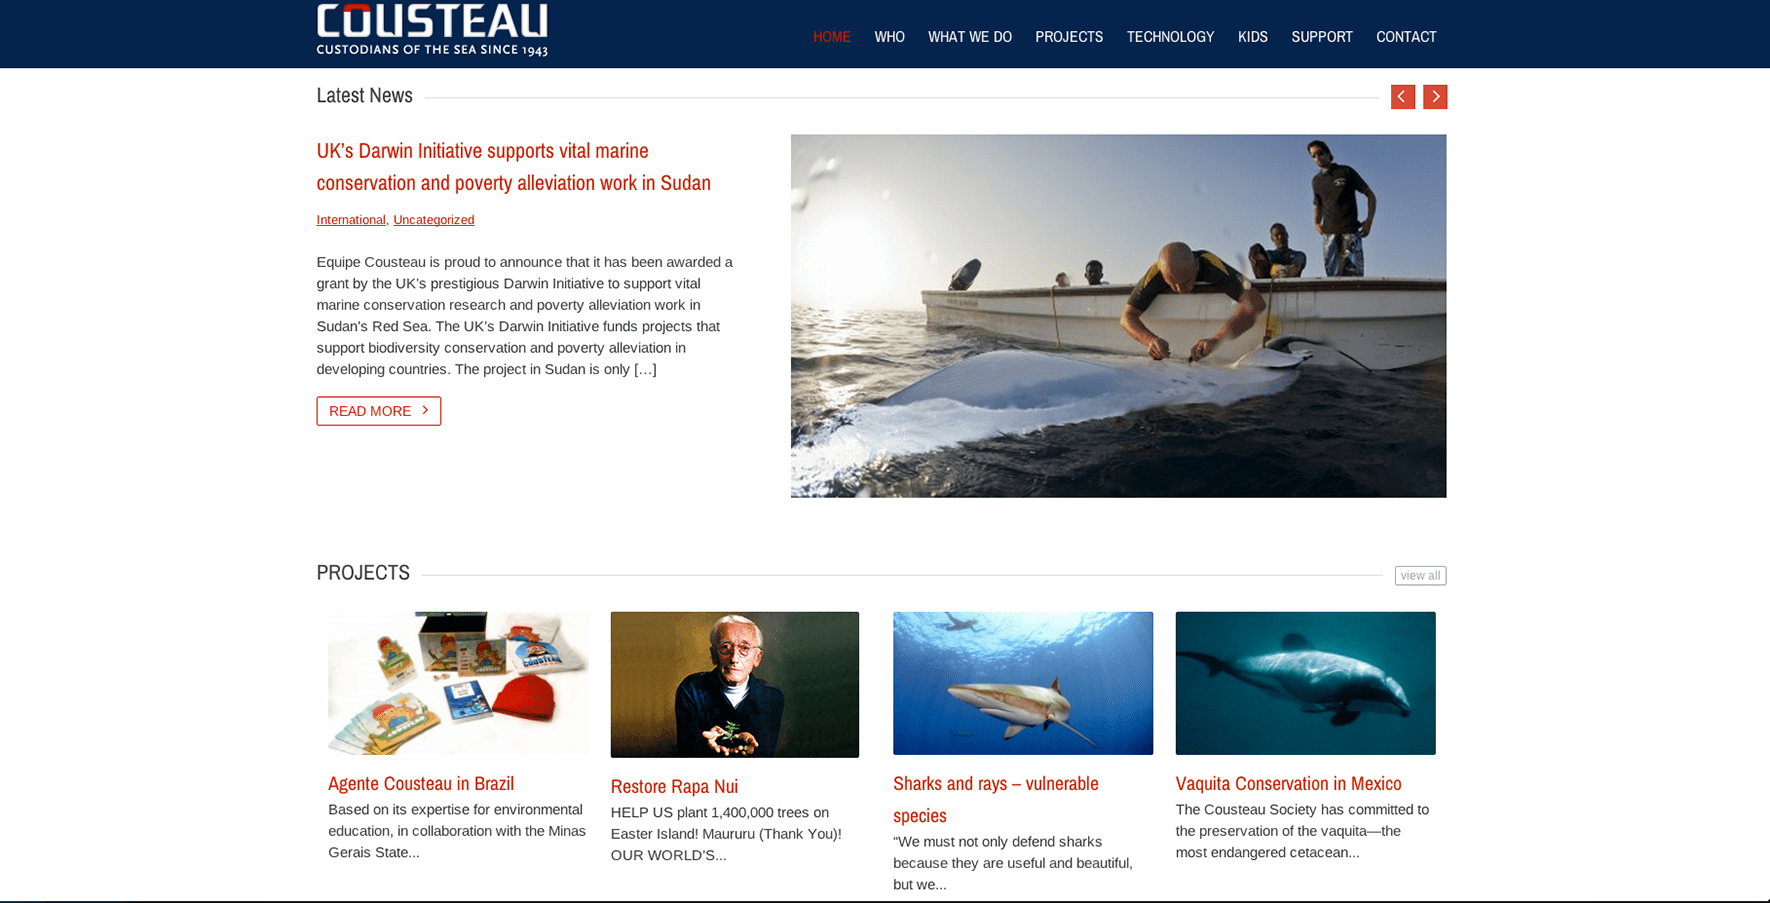 Cousteau Society website design